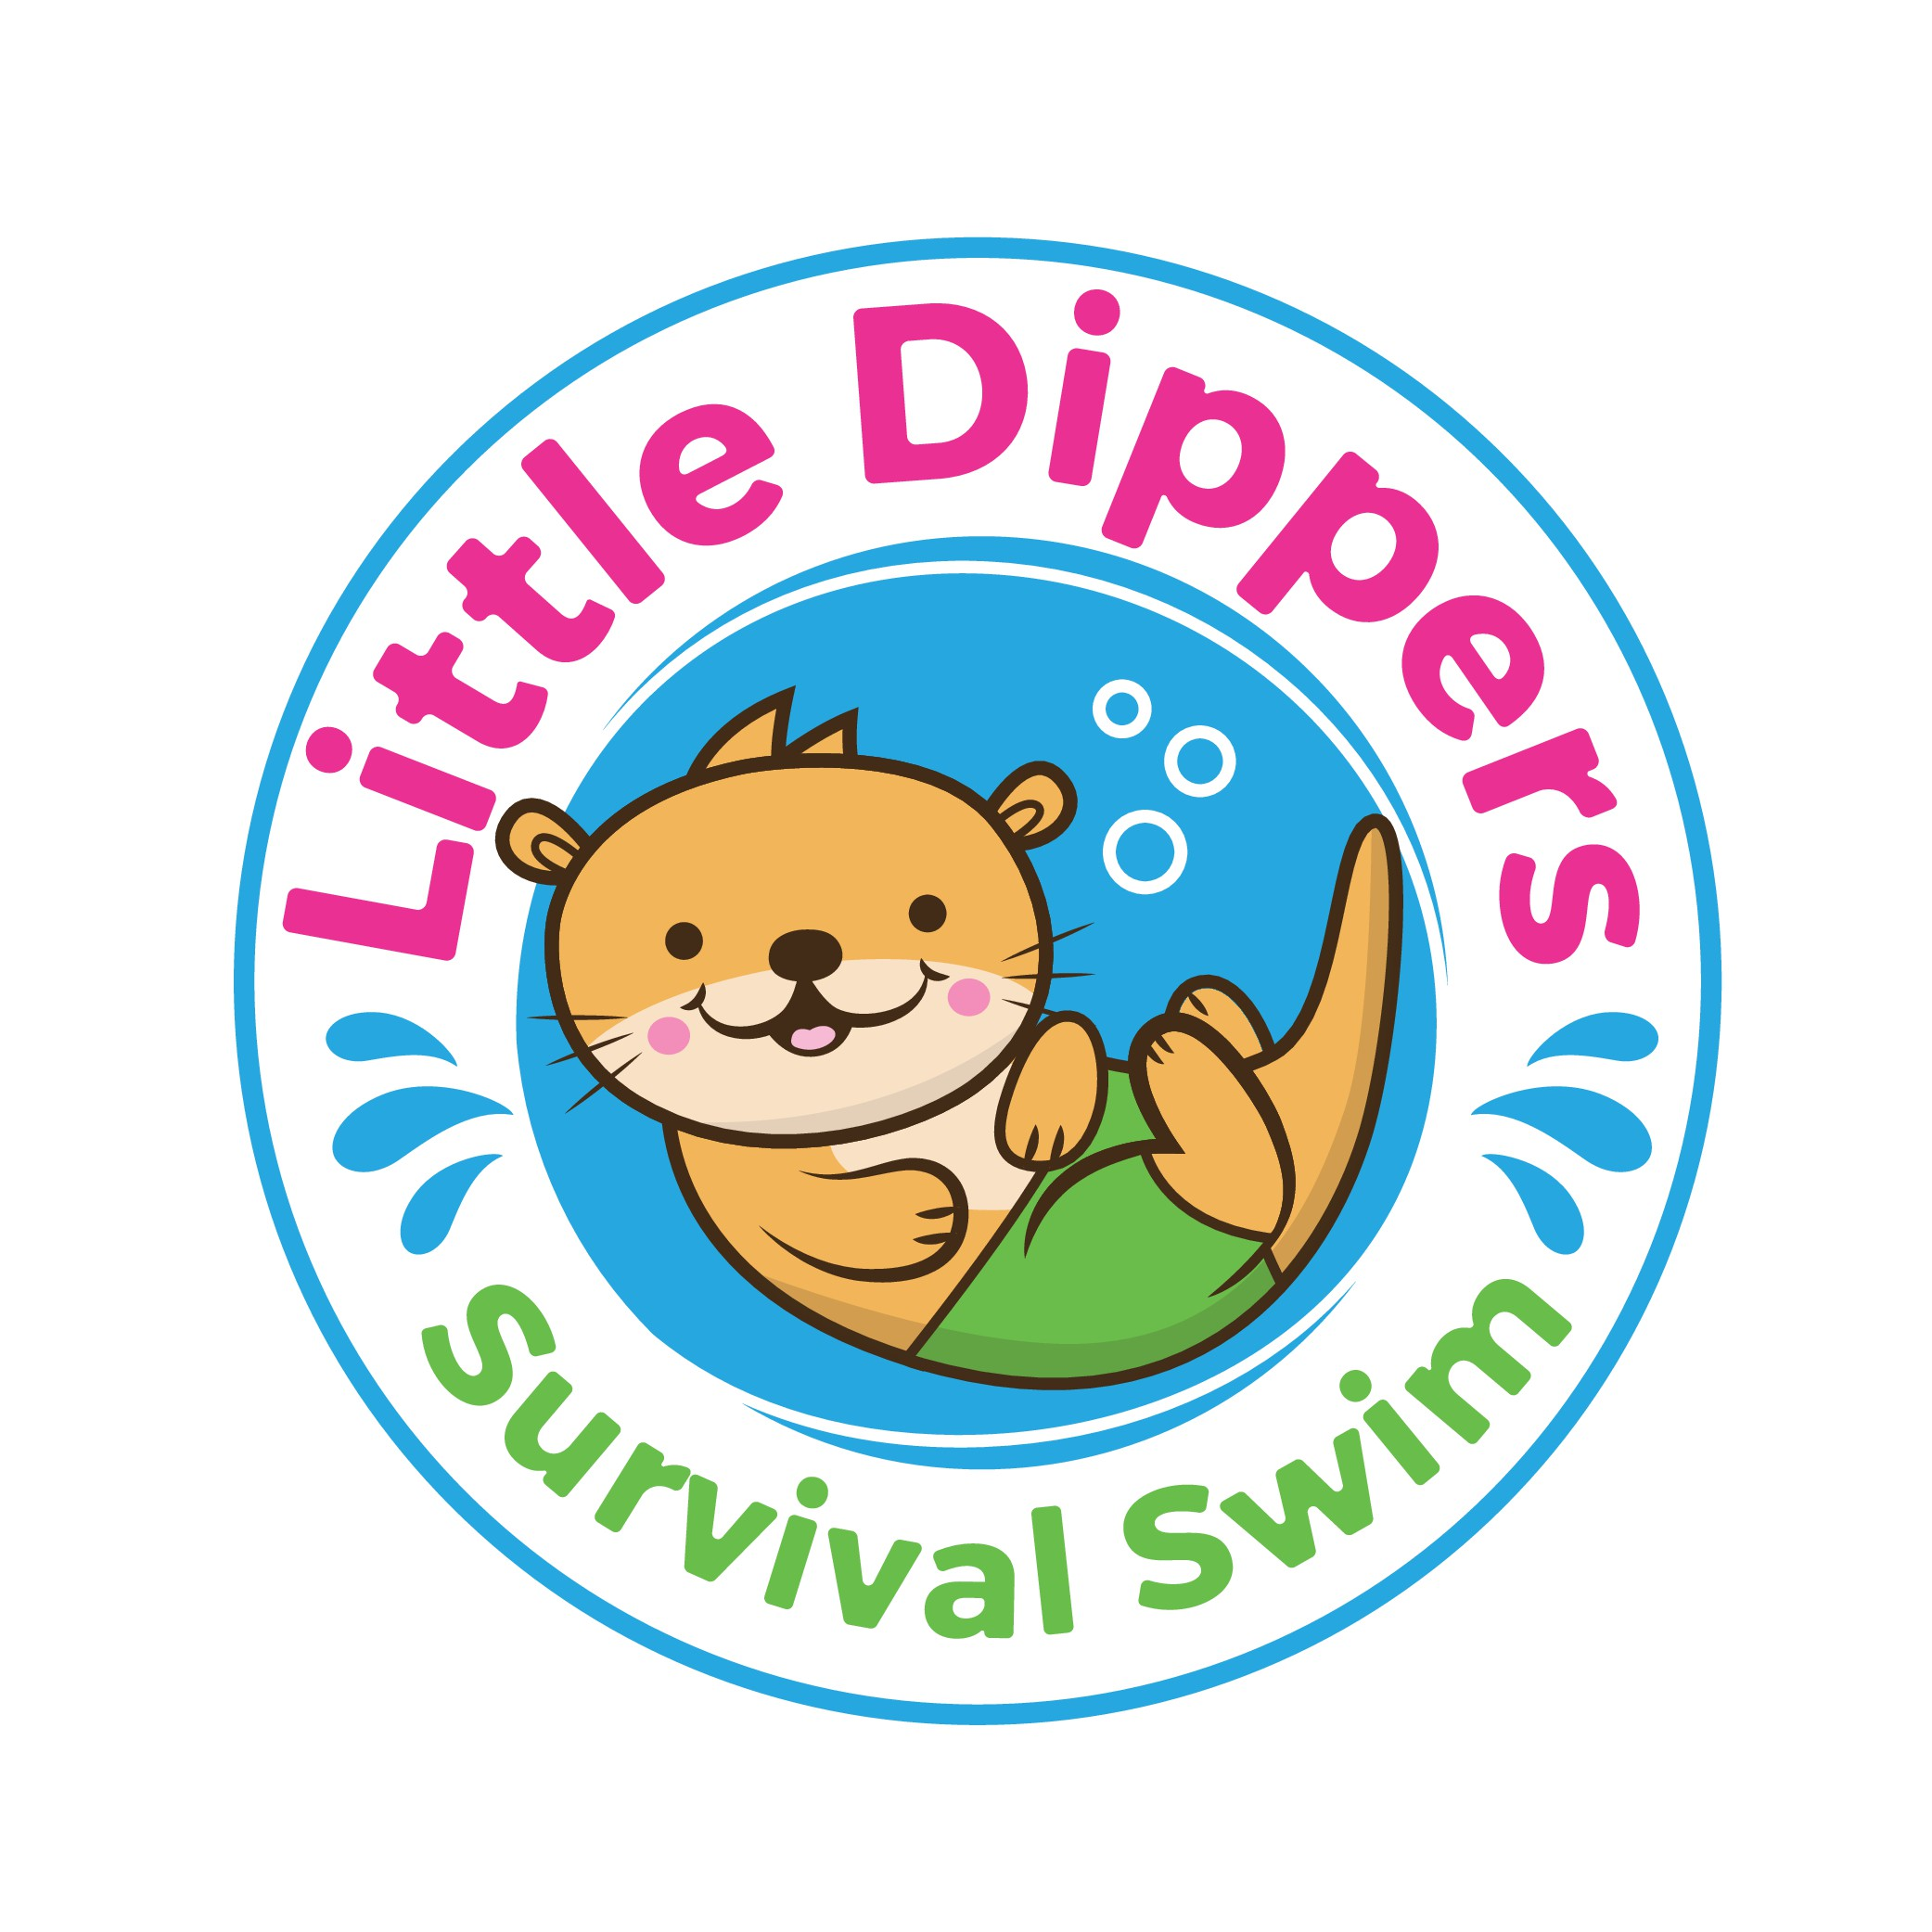 friendly, happy, family-orented swim school teaching babies to survive a fall in the water